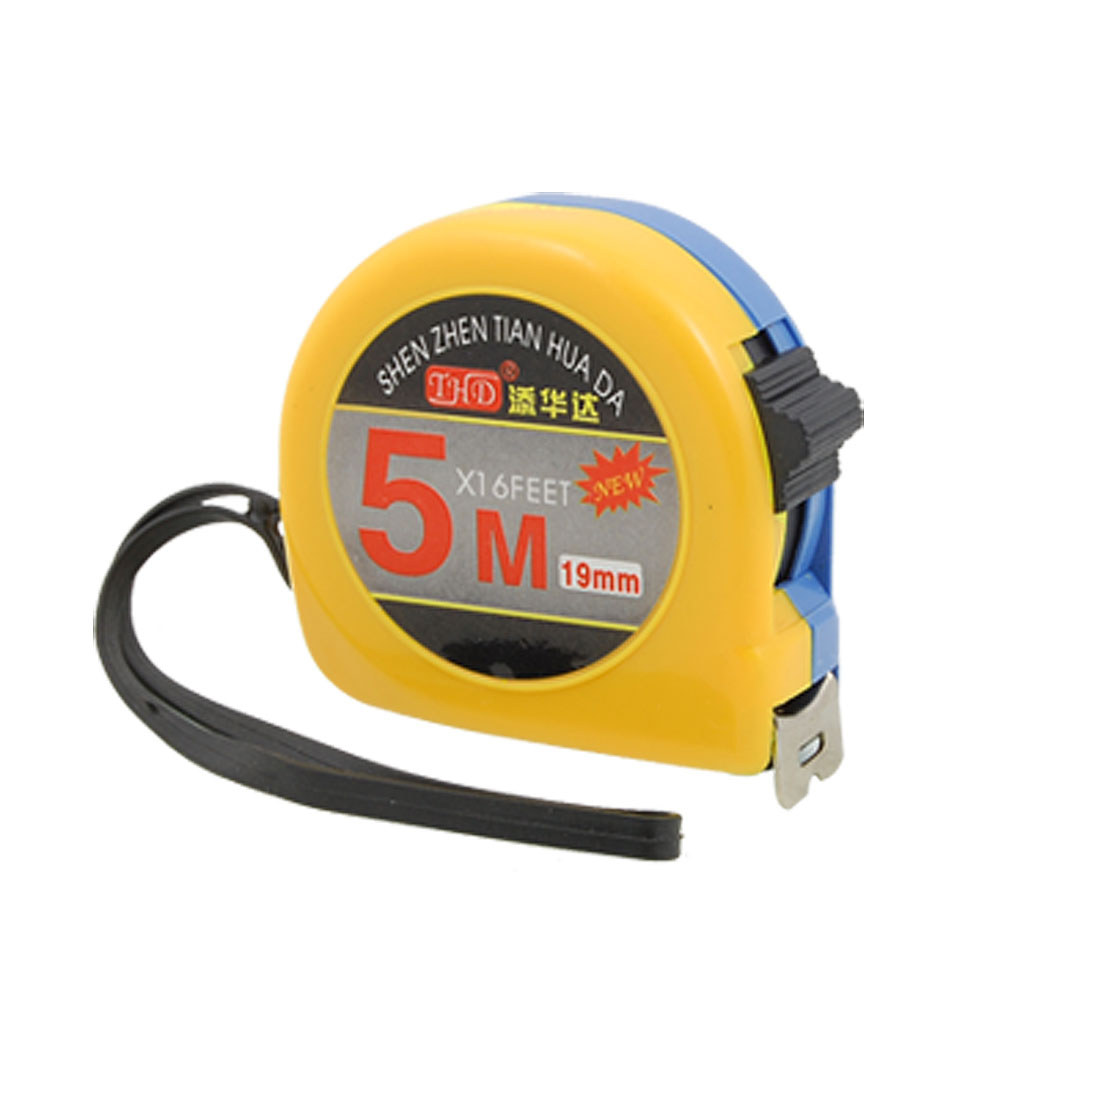 5M Yellow Blue Retractable Tape Measure with Manual Lock